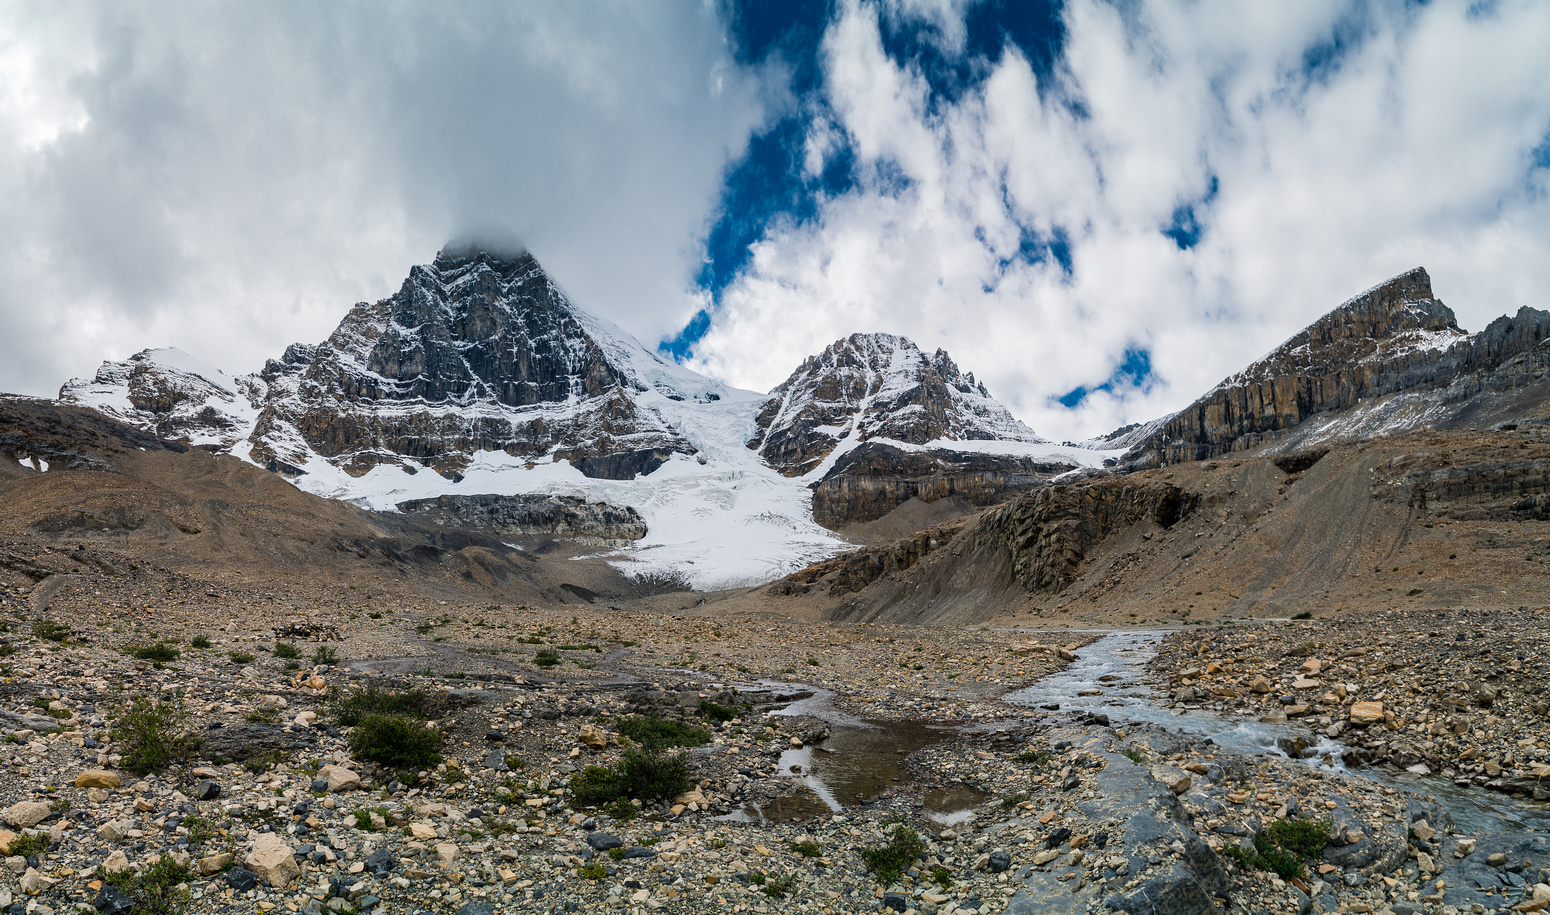 Just before the bivy site - views are stunning! There's quite a bit of fresh snow on our route but this means less ice in the couloirs, which is a good thing.